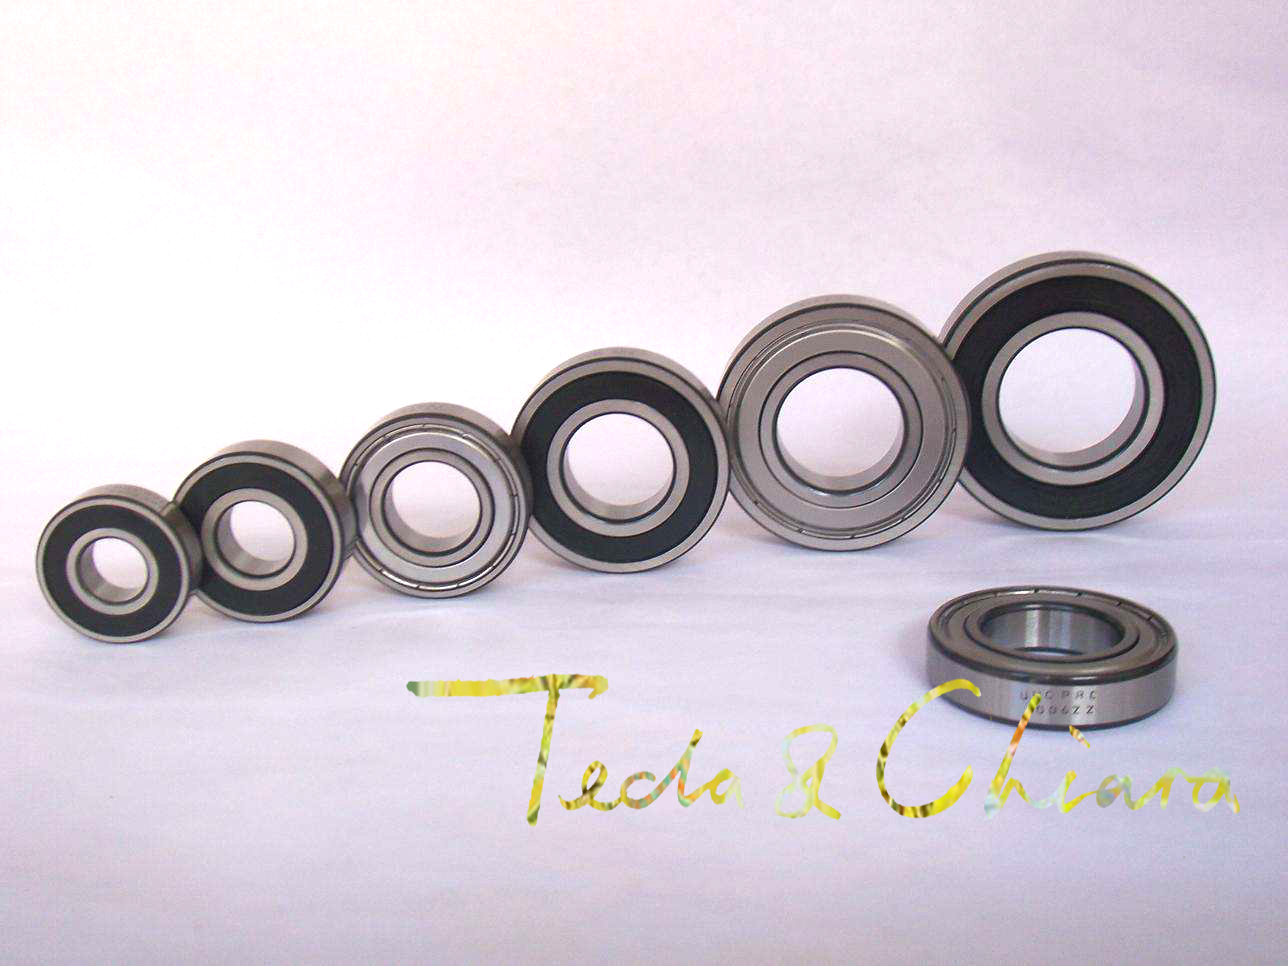 10Pcs 6707 6707ZZ <font><b>6707RS</b></font> 6707-2Z 6707Z 6707-2RS ZZ RS RZ 2RZ Deep Groove Ball Bearings 35 x 44 x 5mm High Quality image